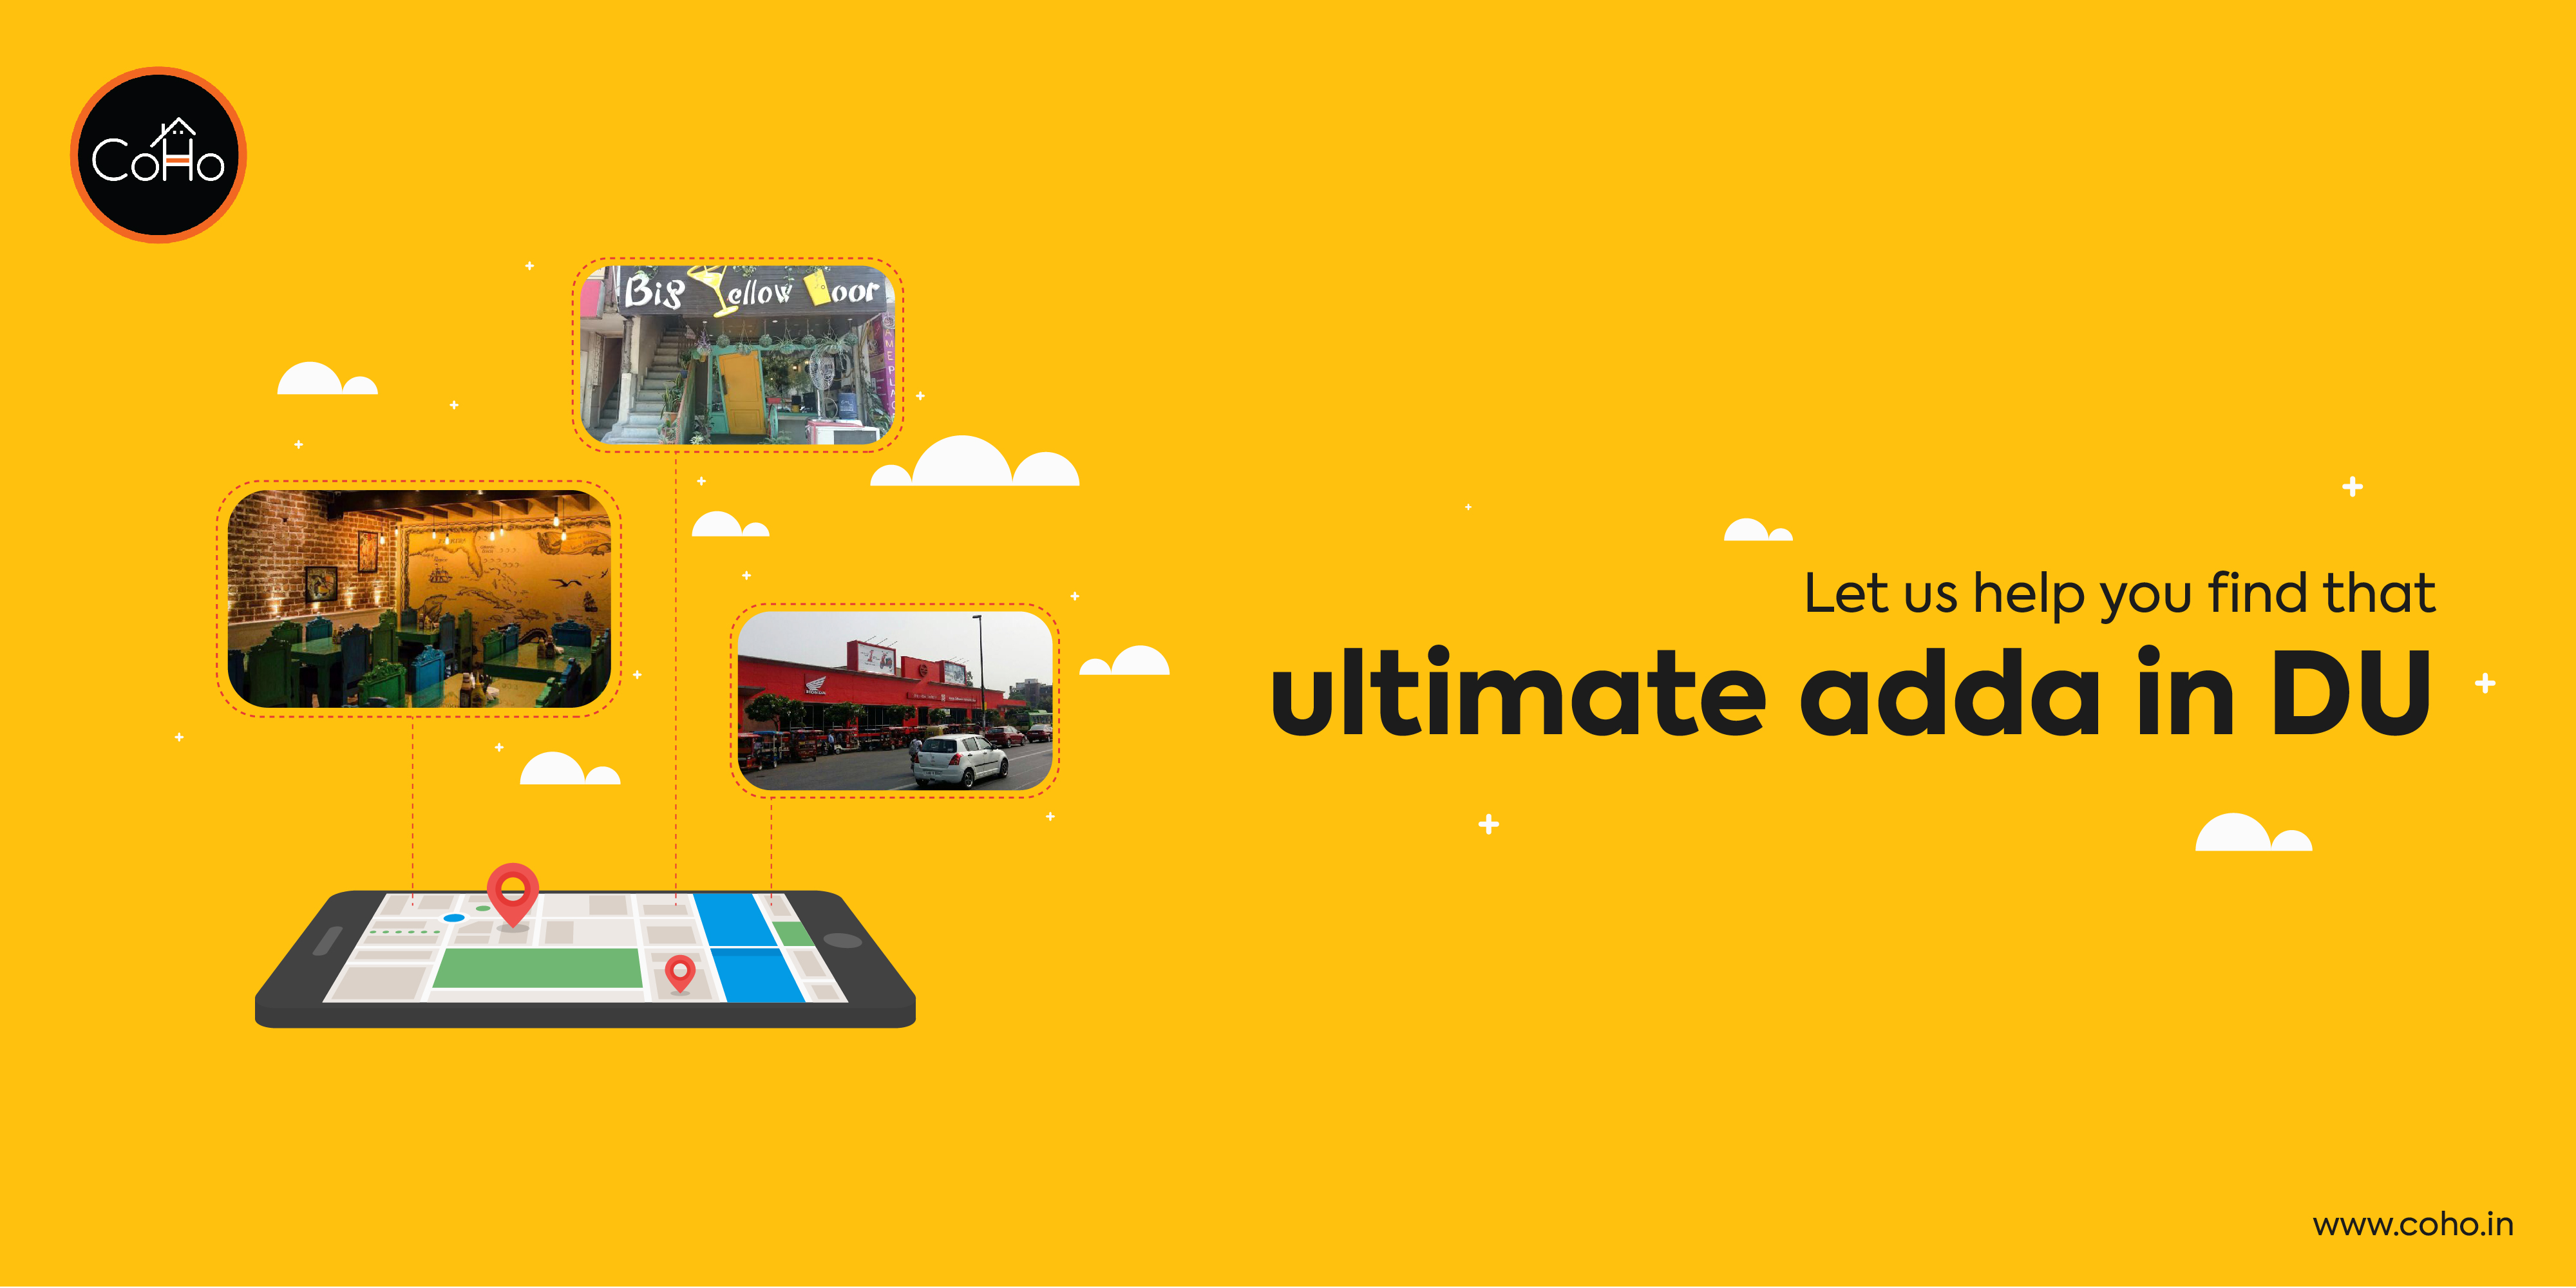 Let us help you find that ultimate adda in DU